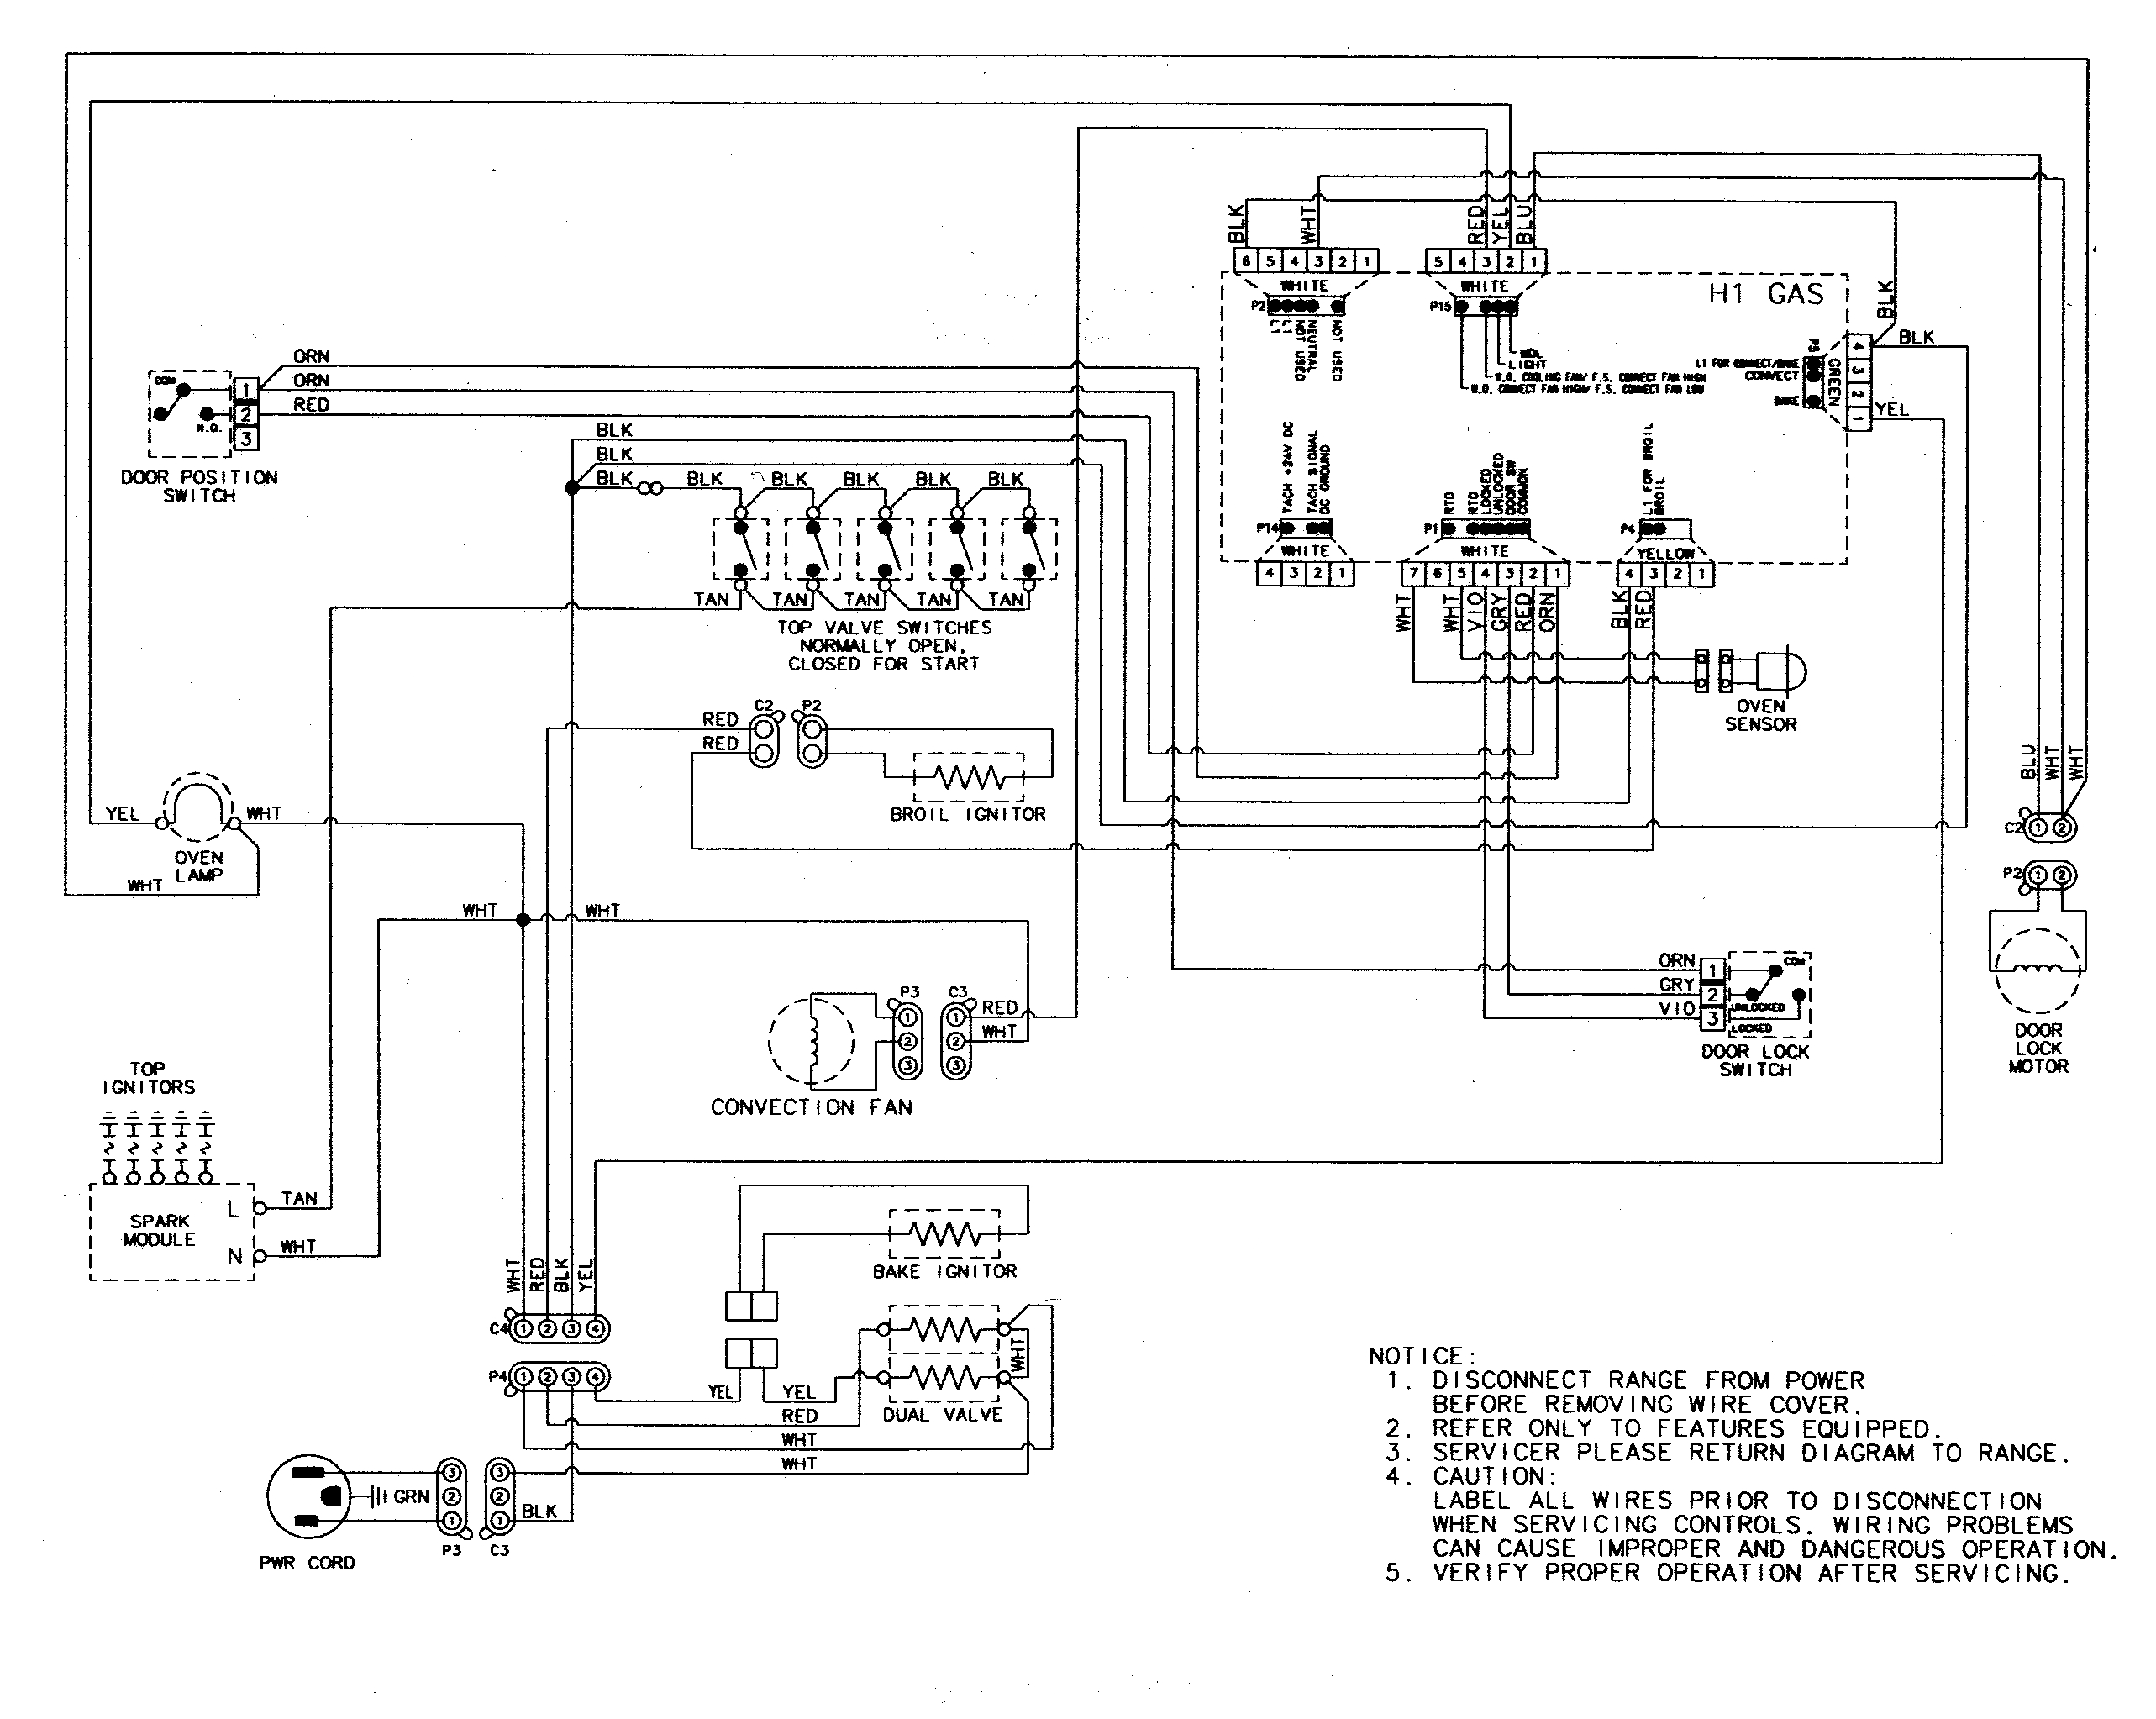 Ge Stove Wiring To Burners - Wiring Diagram Data - Ge Stove Wiring Diagram